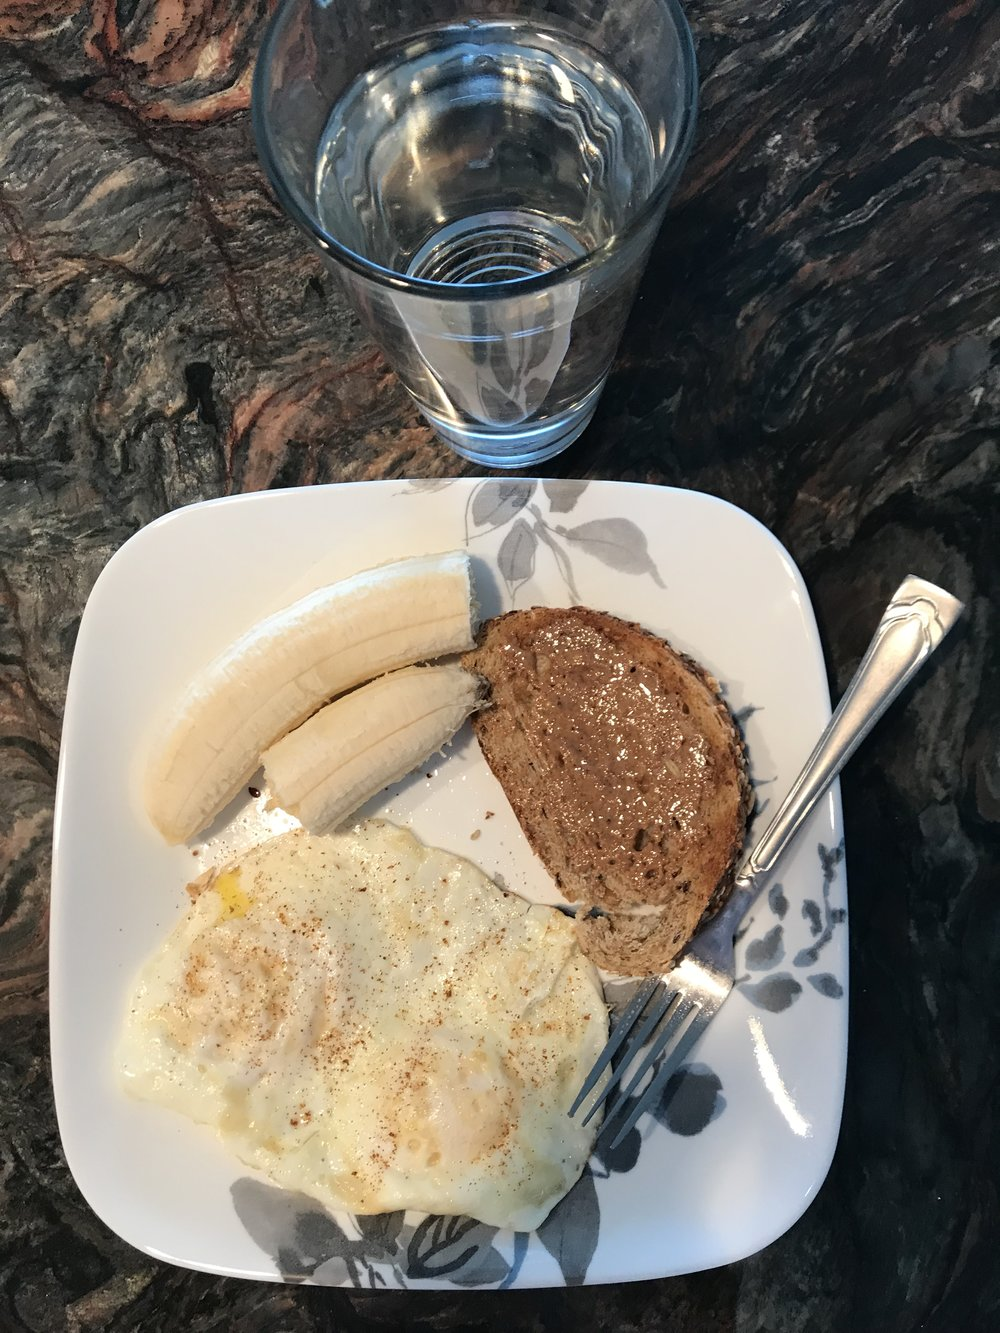 BREAKFAST - 1 slice of multi-grain bread, 1 tsp of almond butter, 1 medium banana, 2 fried eggs, and water.